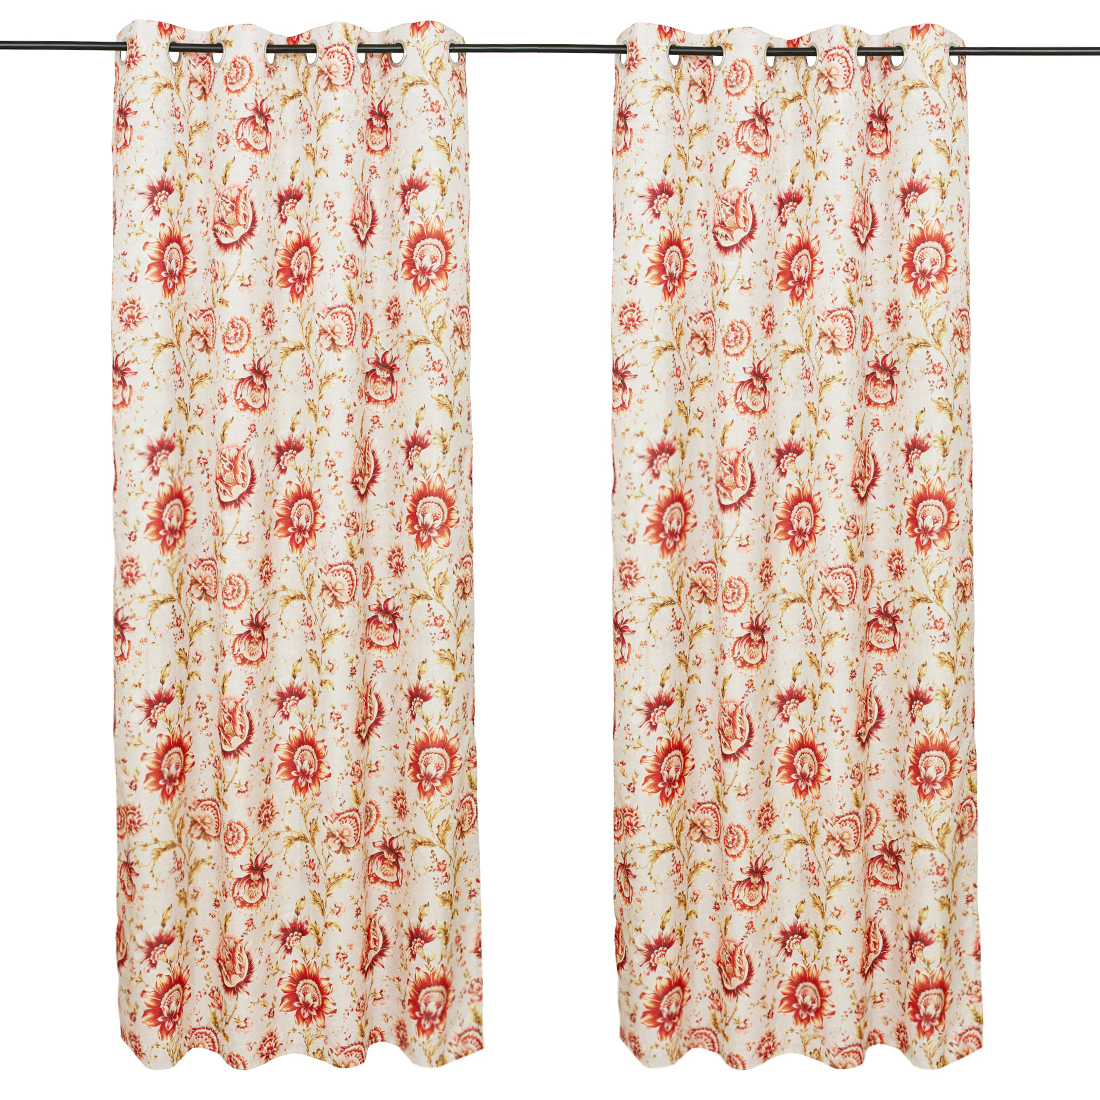 Nora Printed set of 2 Polyester Door Curtains in Maroon Colour by Living Essence